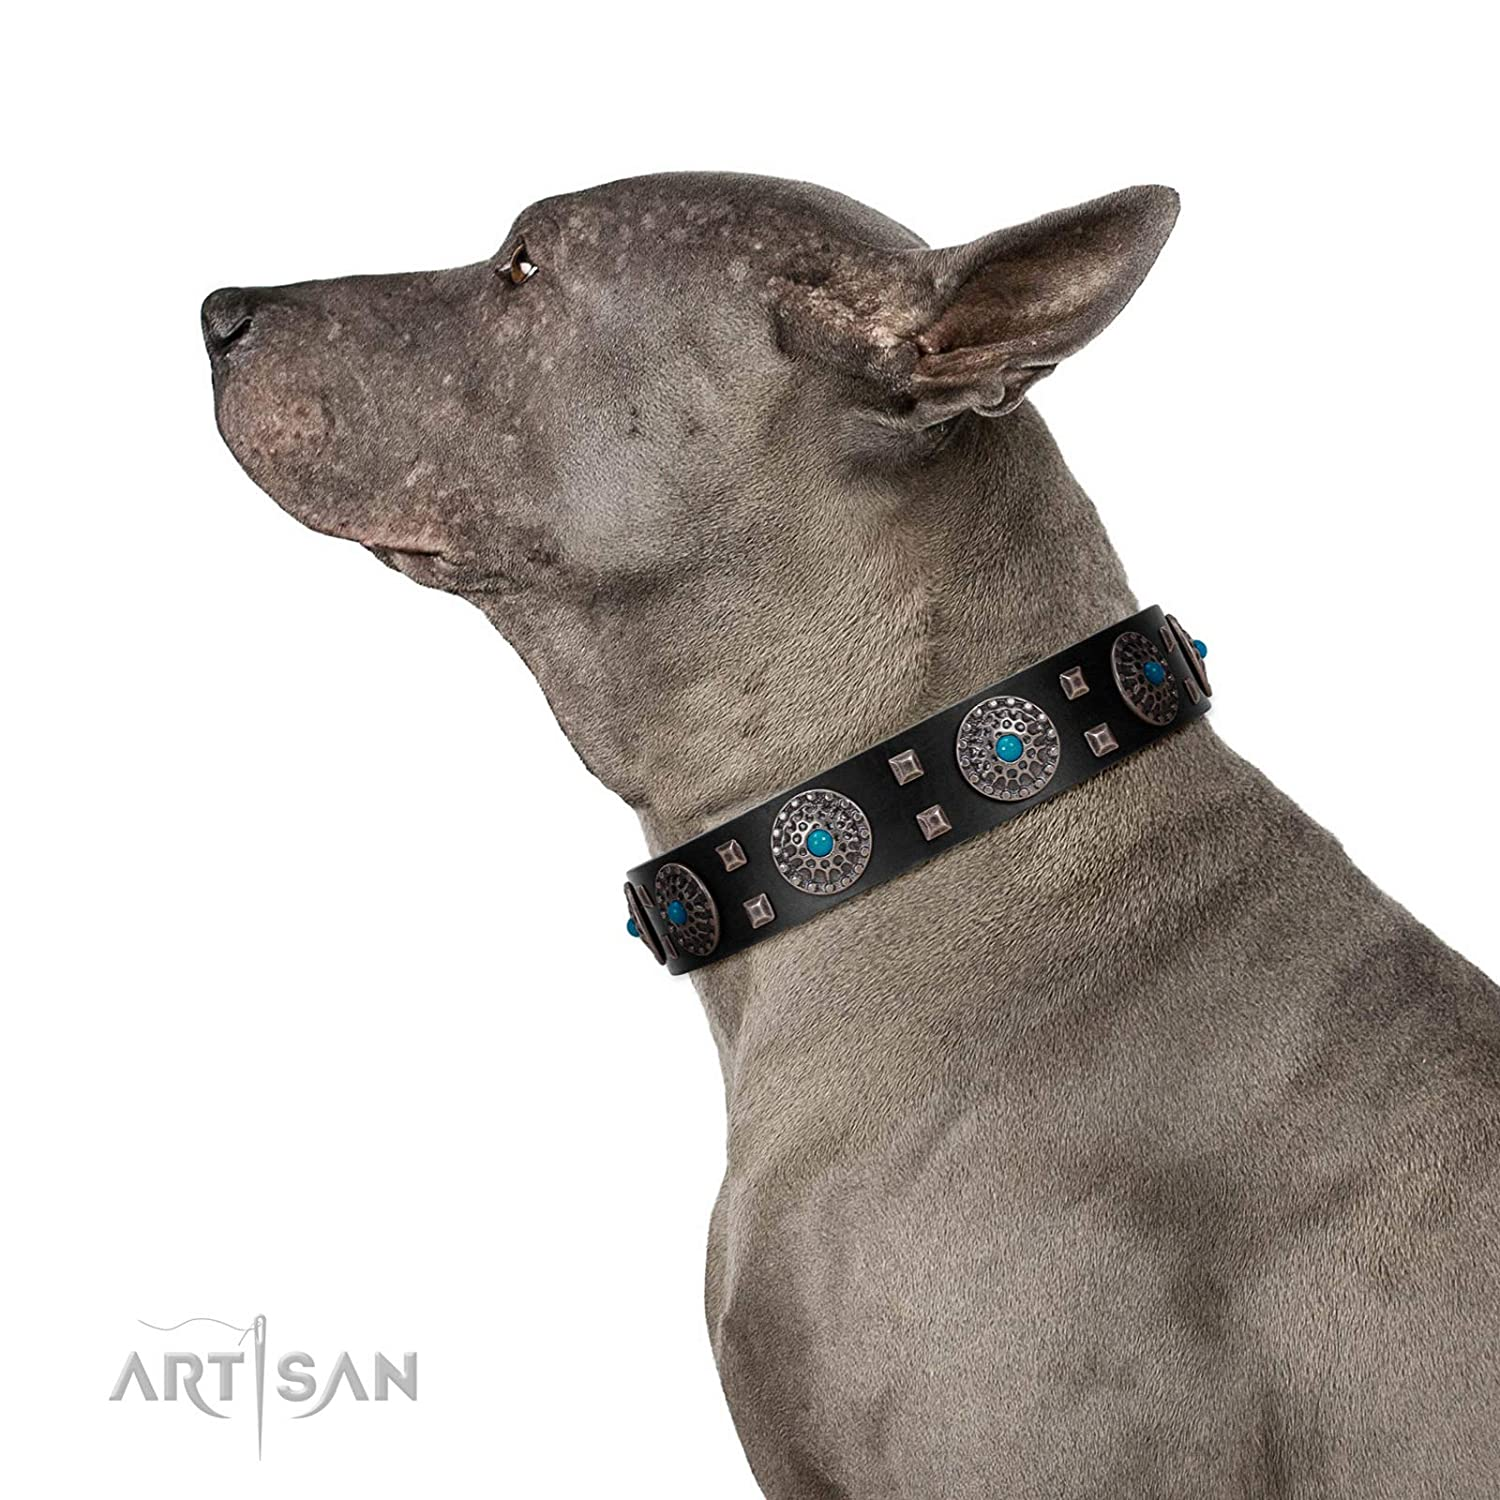 Fits for 28 inch (70cm) dog's neck size FDT Artisan 28 inch Boundless bluee Black Leather Dog Collar with Chrome Plated Brooches and Square Studs 1 1 2 inch (40 mm) Wide Gift Packaging Included